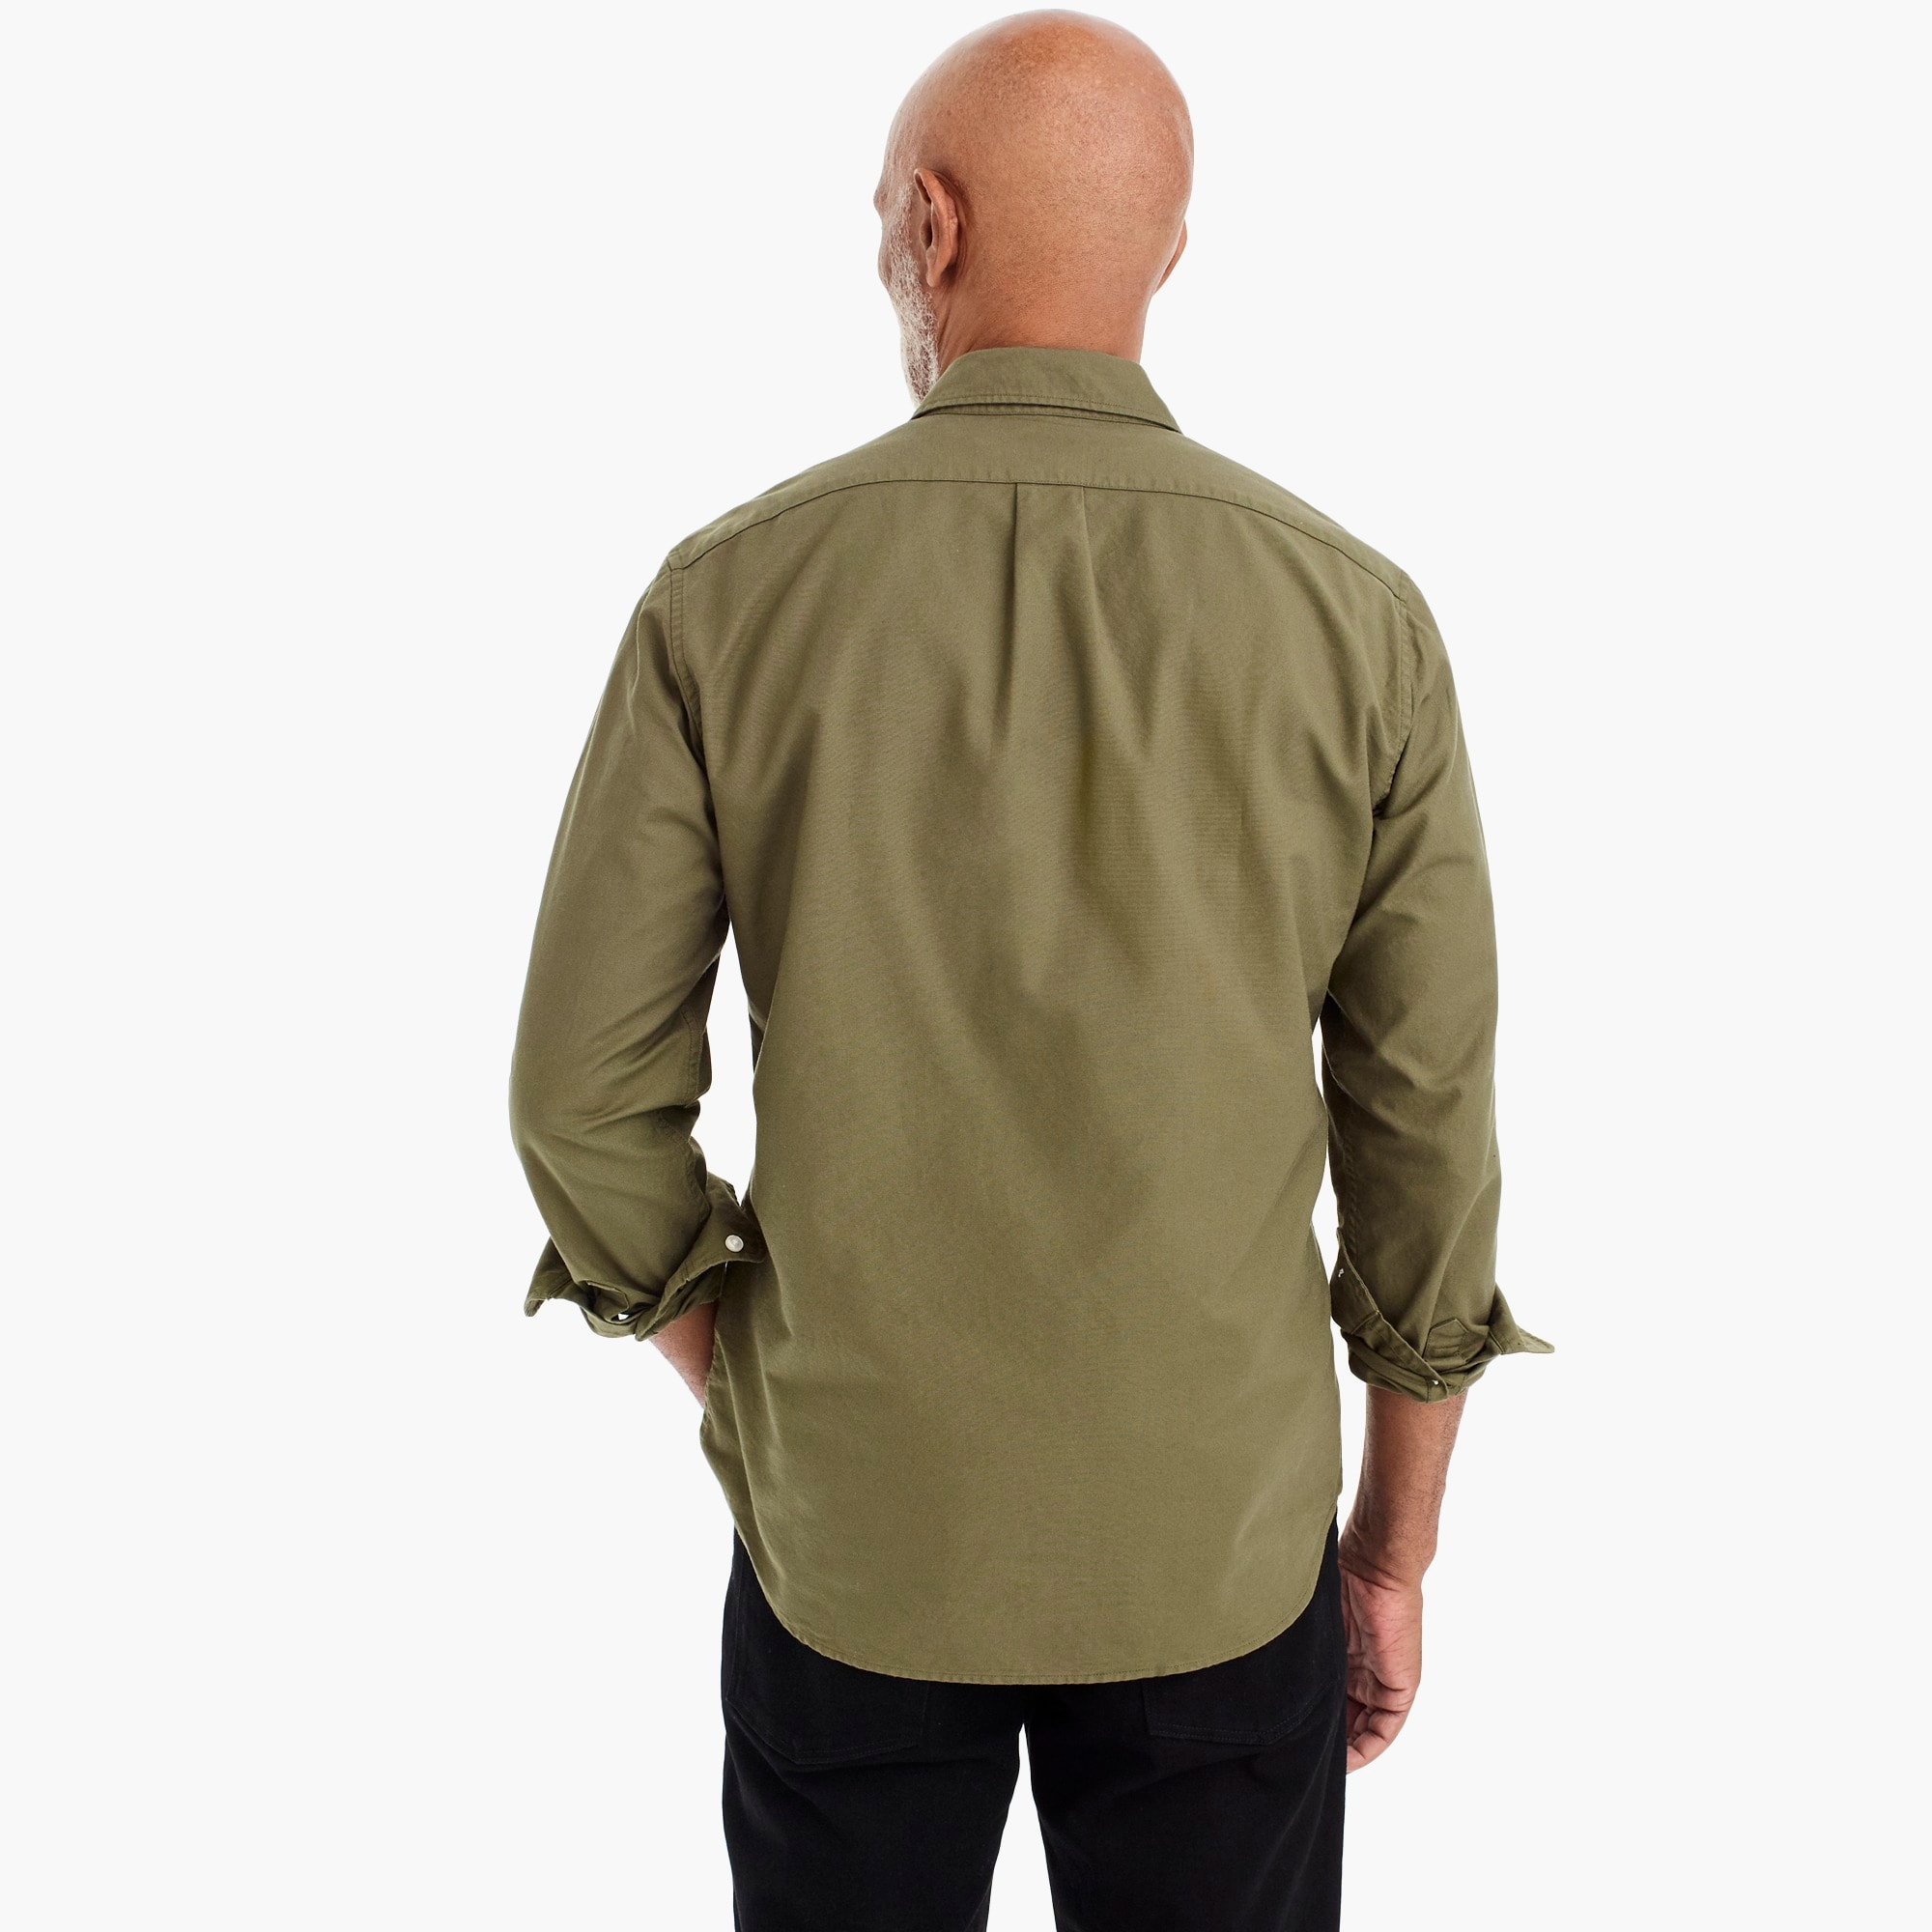 American Pima cotton oxford shirt with mechanical stretch